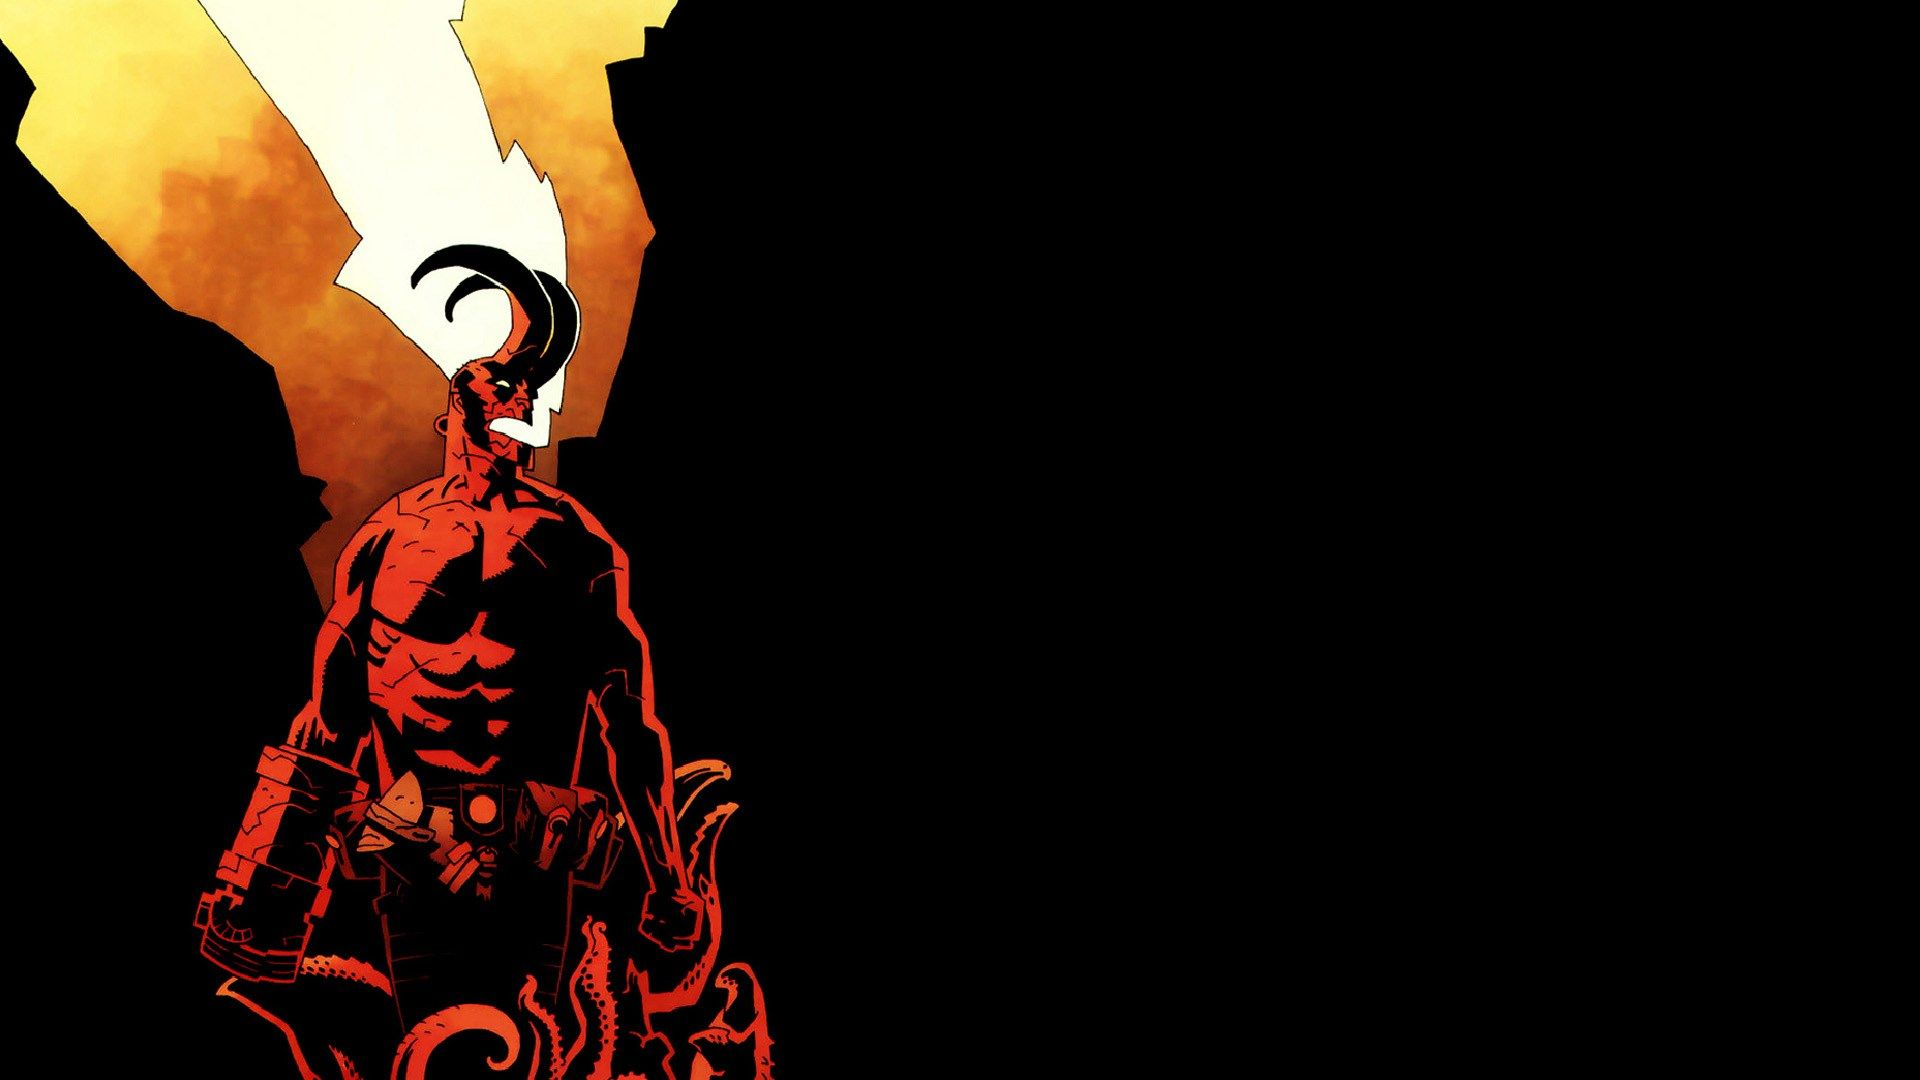 Hellboy Full Hd Wallpaper Photo 1920x1080 Wallpaper Wallpaper